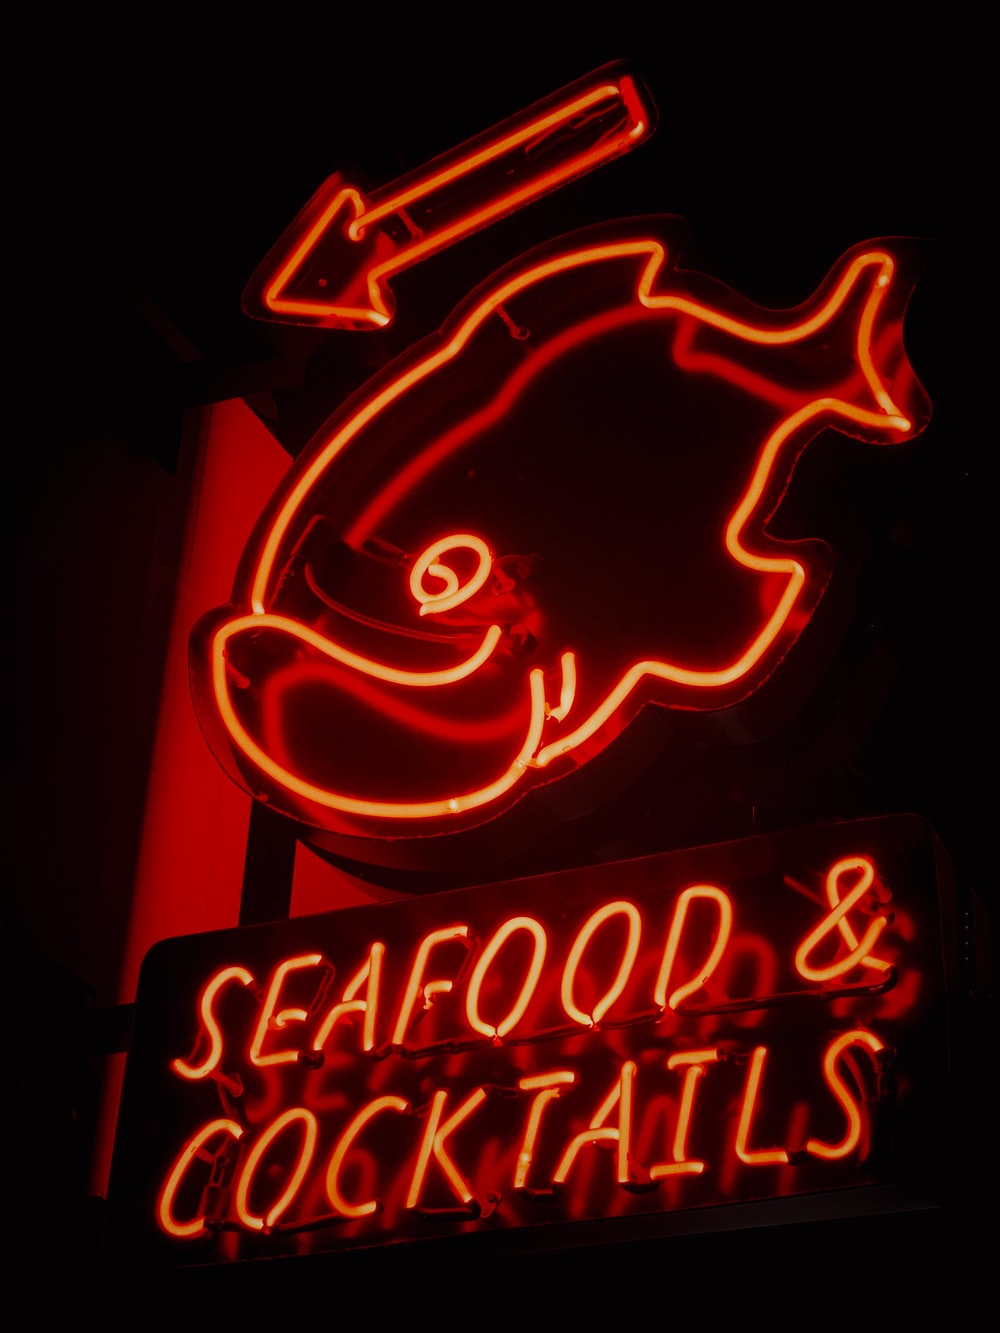 Seafood and Cocktails LED signage